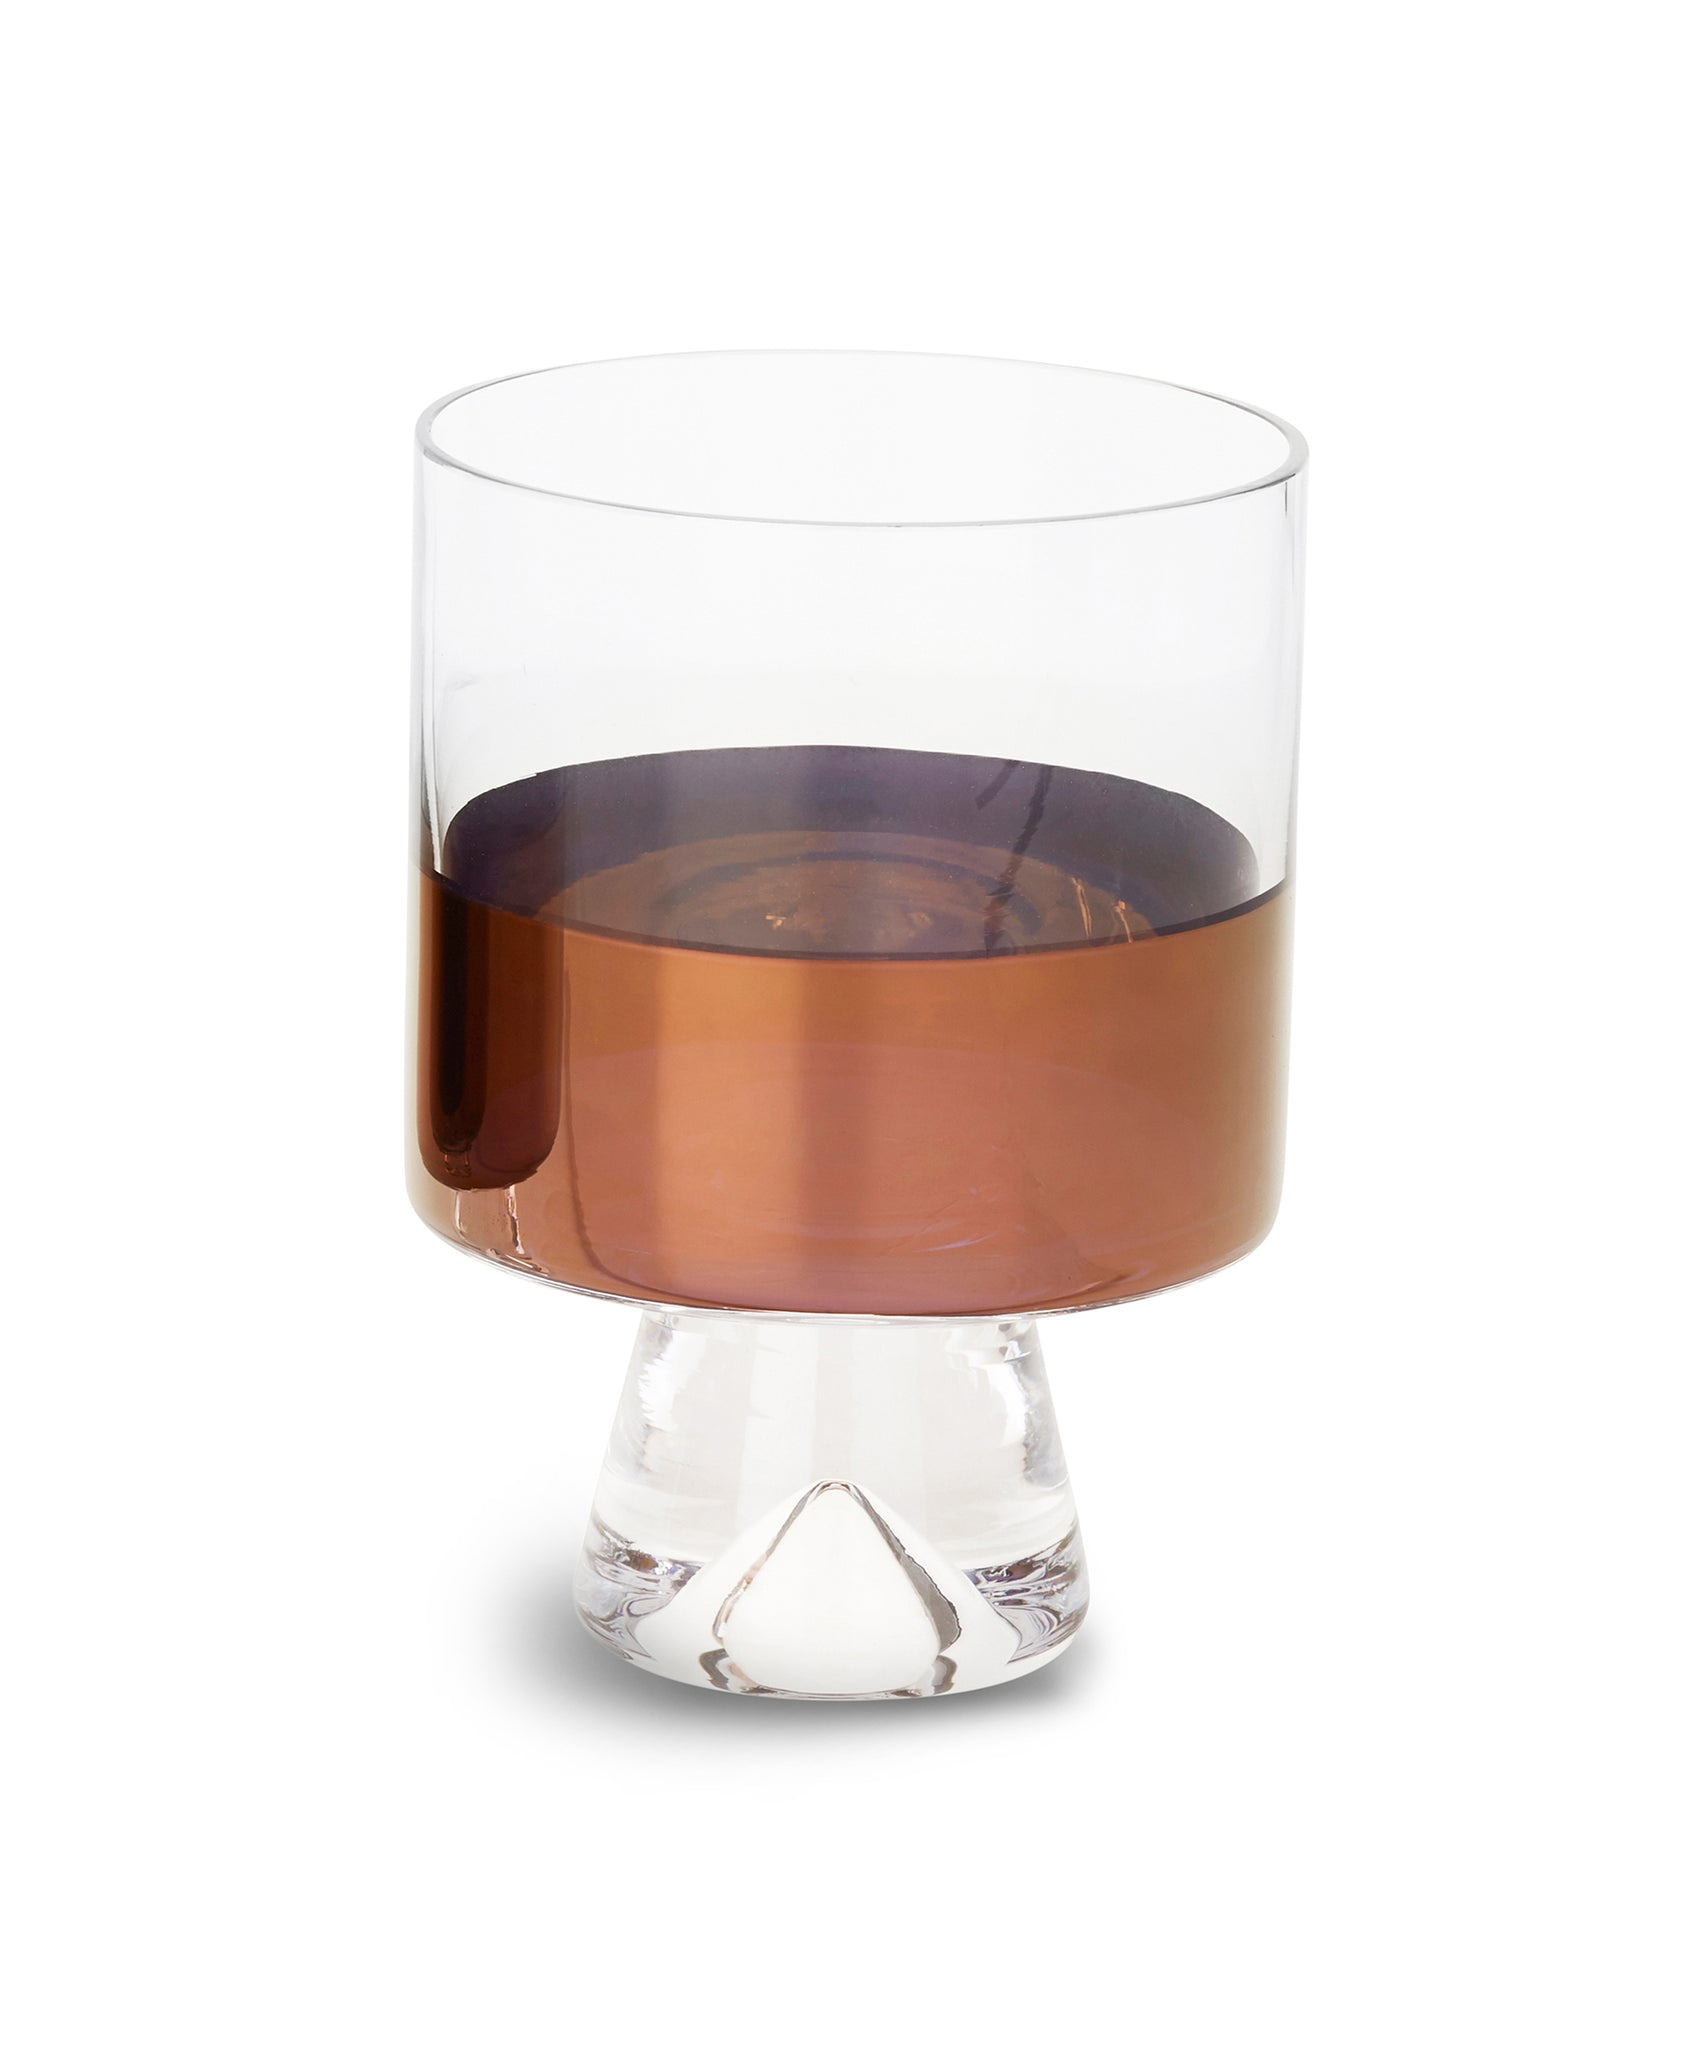 Tank Low Ball Glass x2 by Tom Dixon